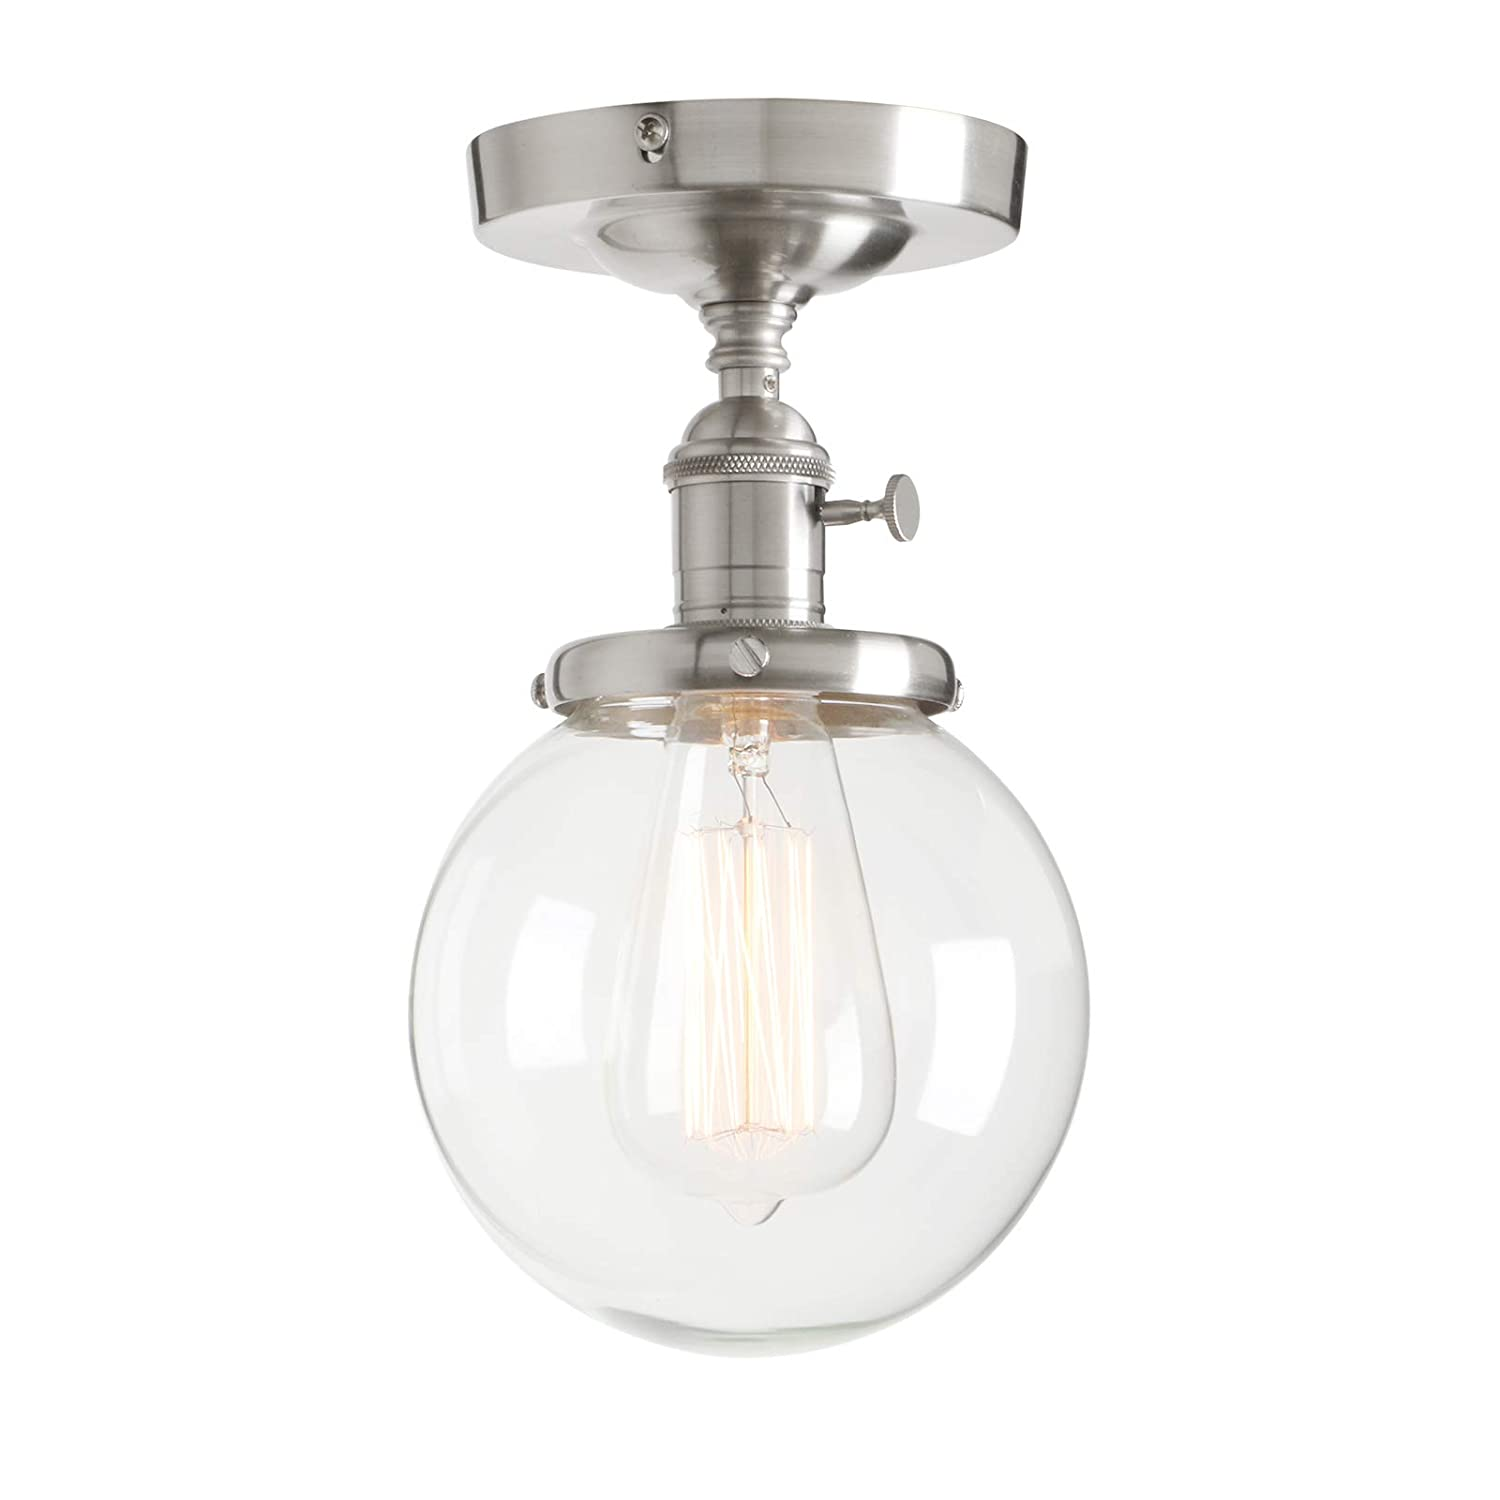 """Permo Vintage Industrial Mini 5.9"""" Round Clear Glass Globe Semi Flush Mount Ceiling Light Fixture (Brushed)"""